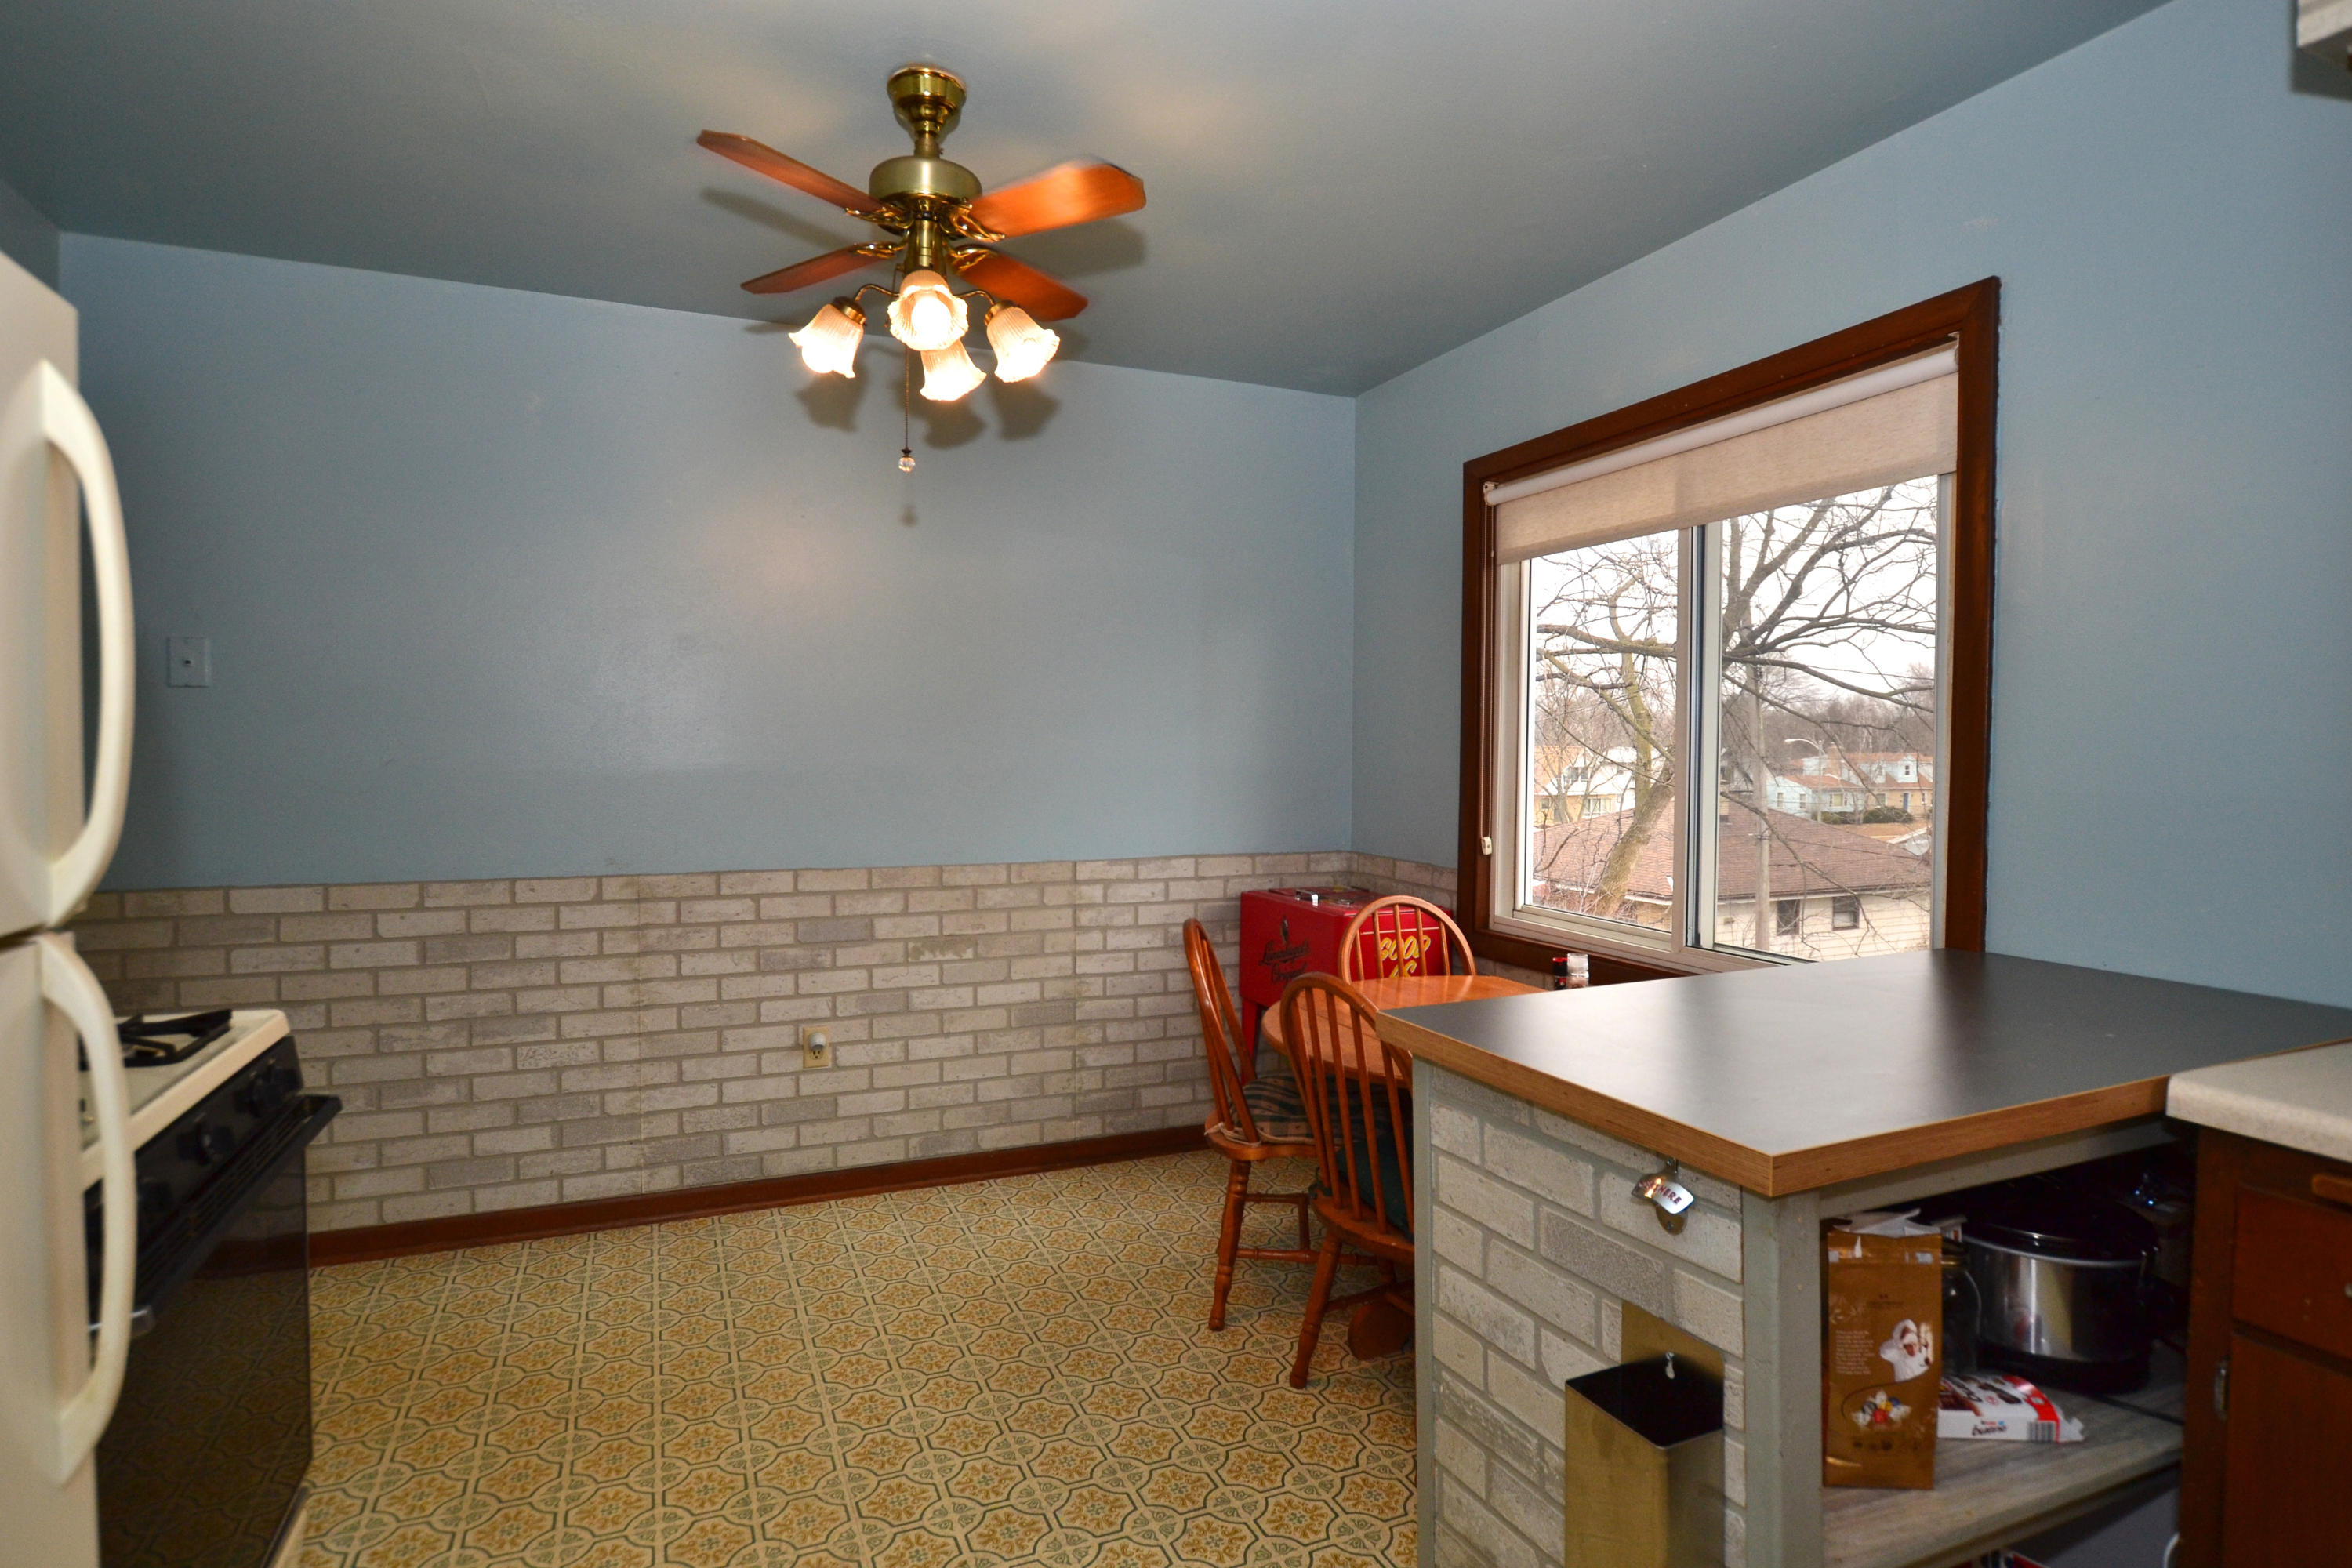 10616 Villard Ave, Milwaukee, Wisconsin 53225, 3 Bedrooms Bedrooms, 5 Rooms Rooms,1 BathroomBathrooms,Two-Family,For Sale,Villard Ave,1,1619146